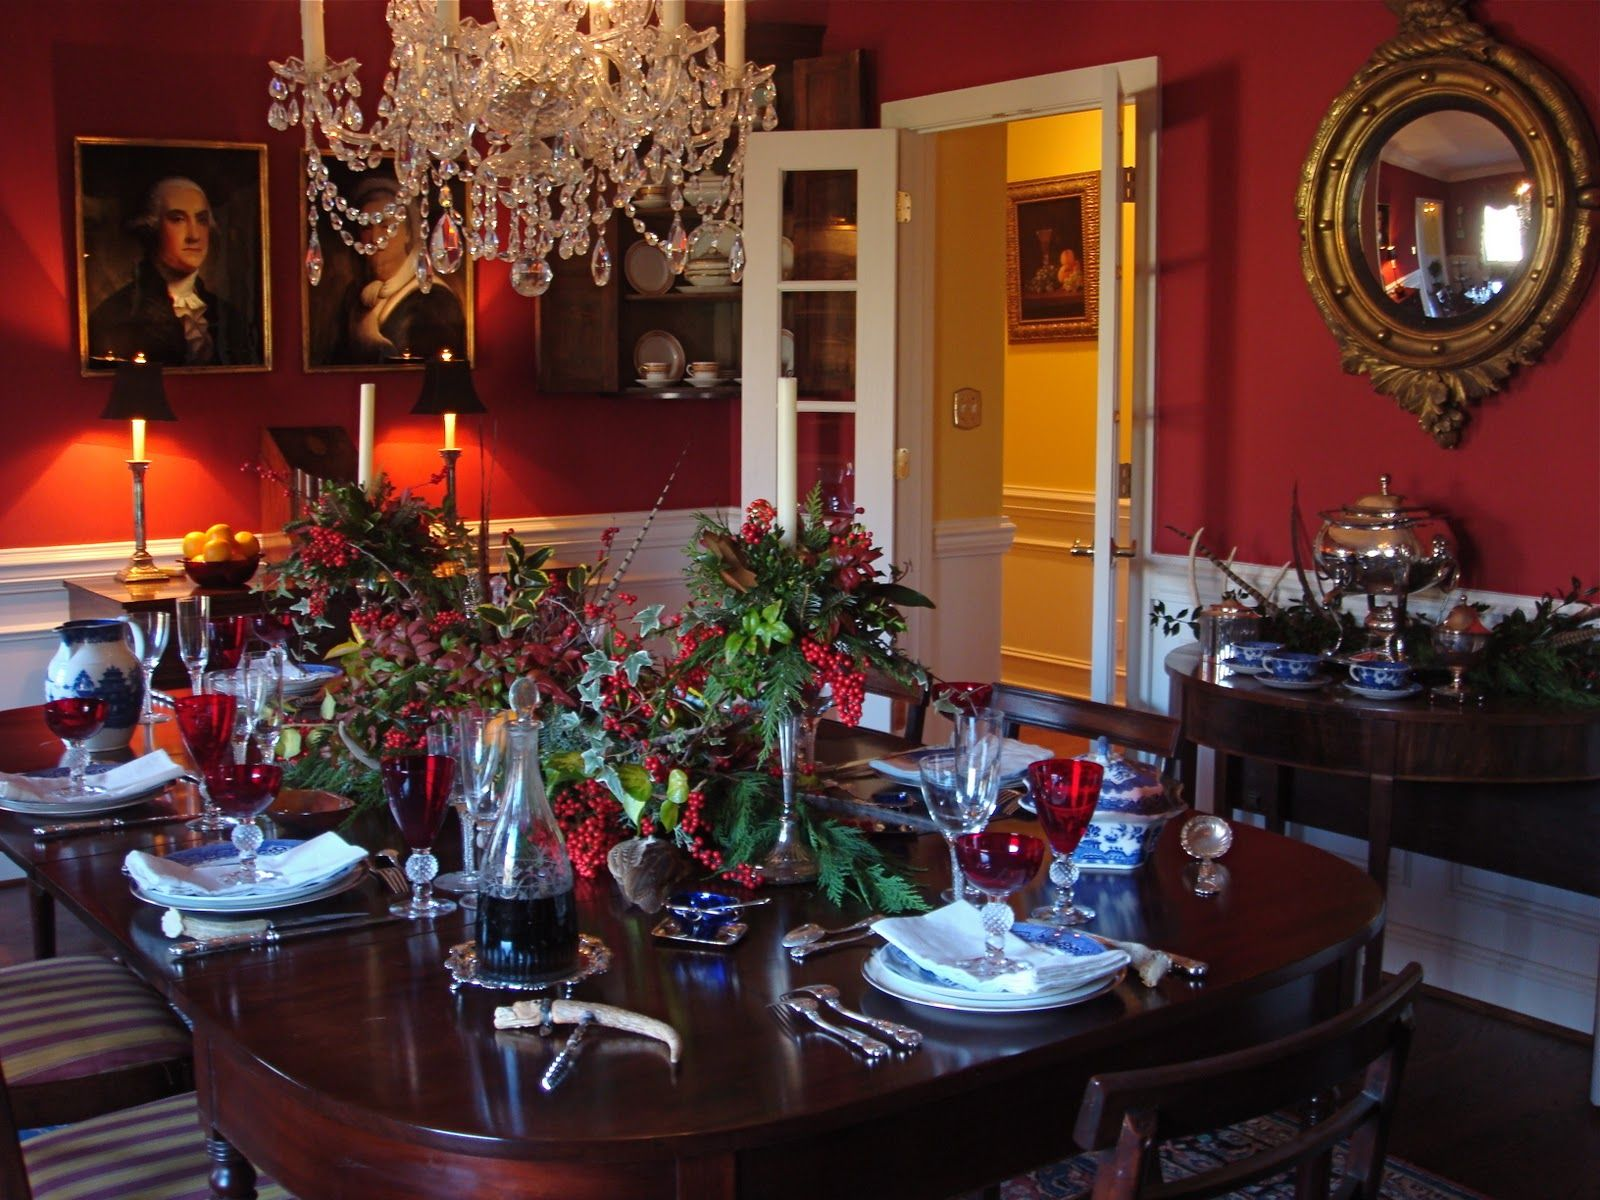 Equestrian Dining Room Decor Decorating In An English Style Google Search Home